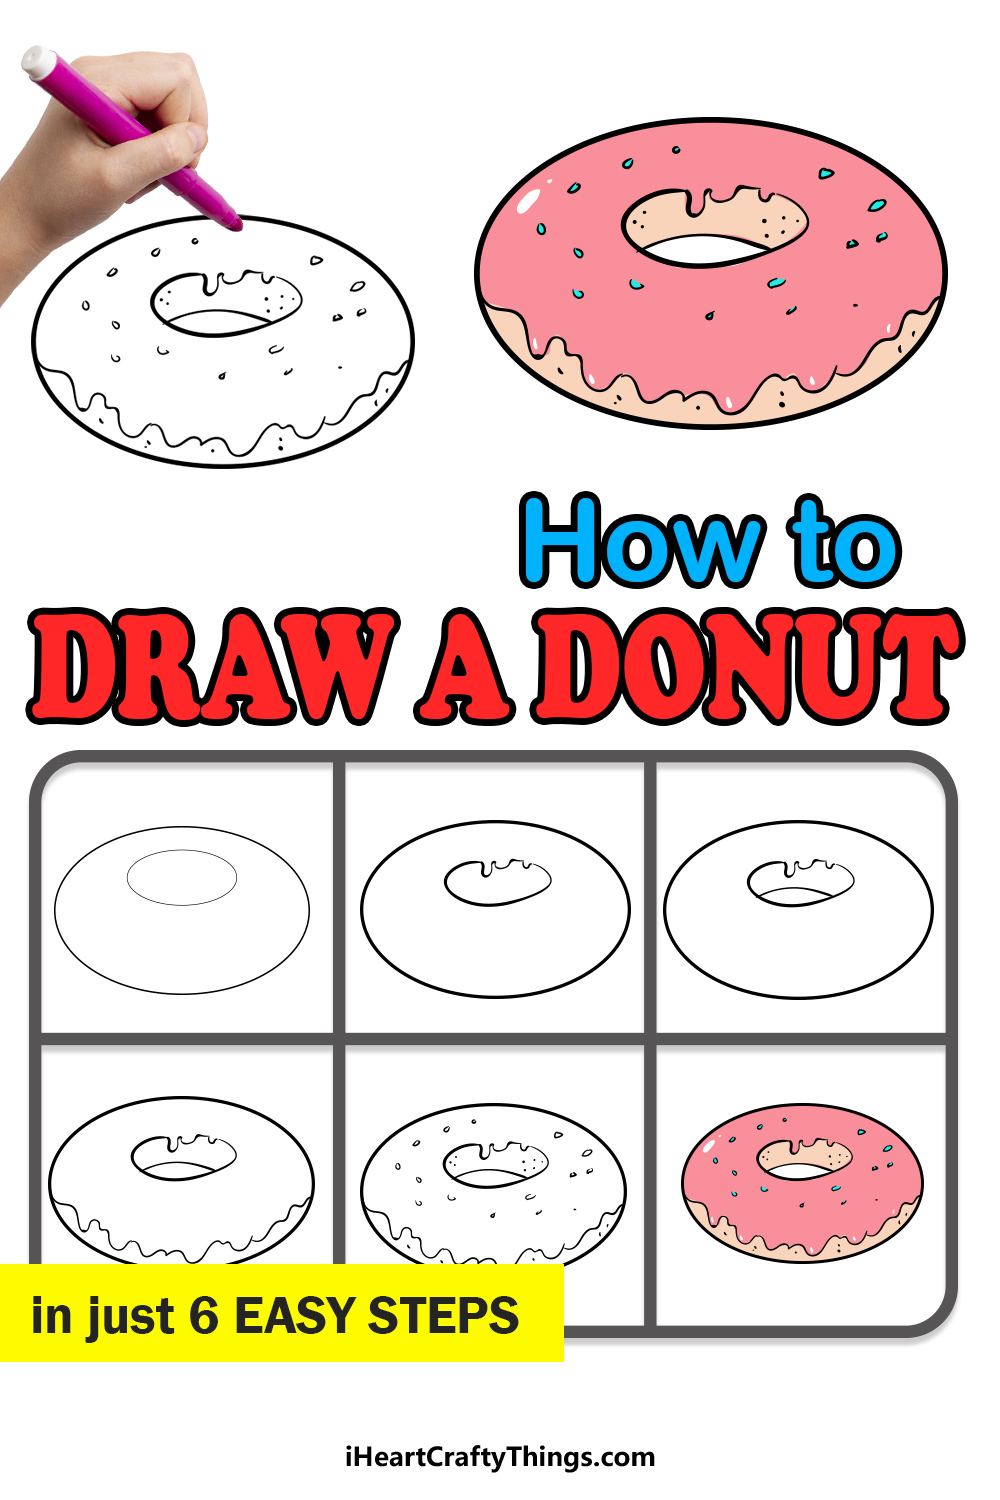 how to draw a donut in 6 easy steps